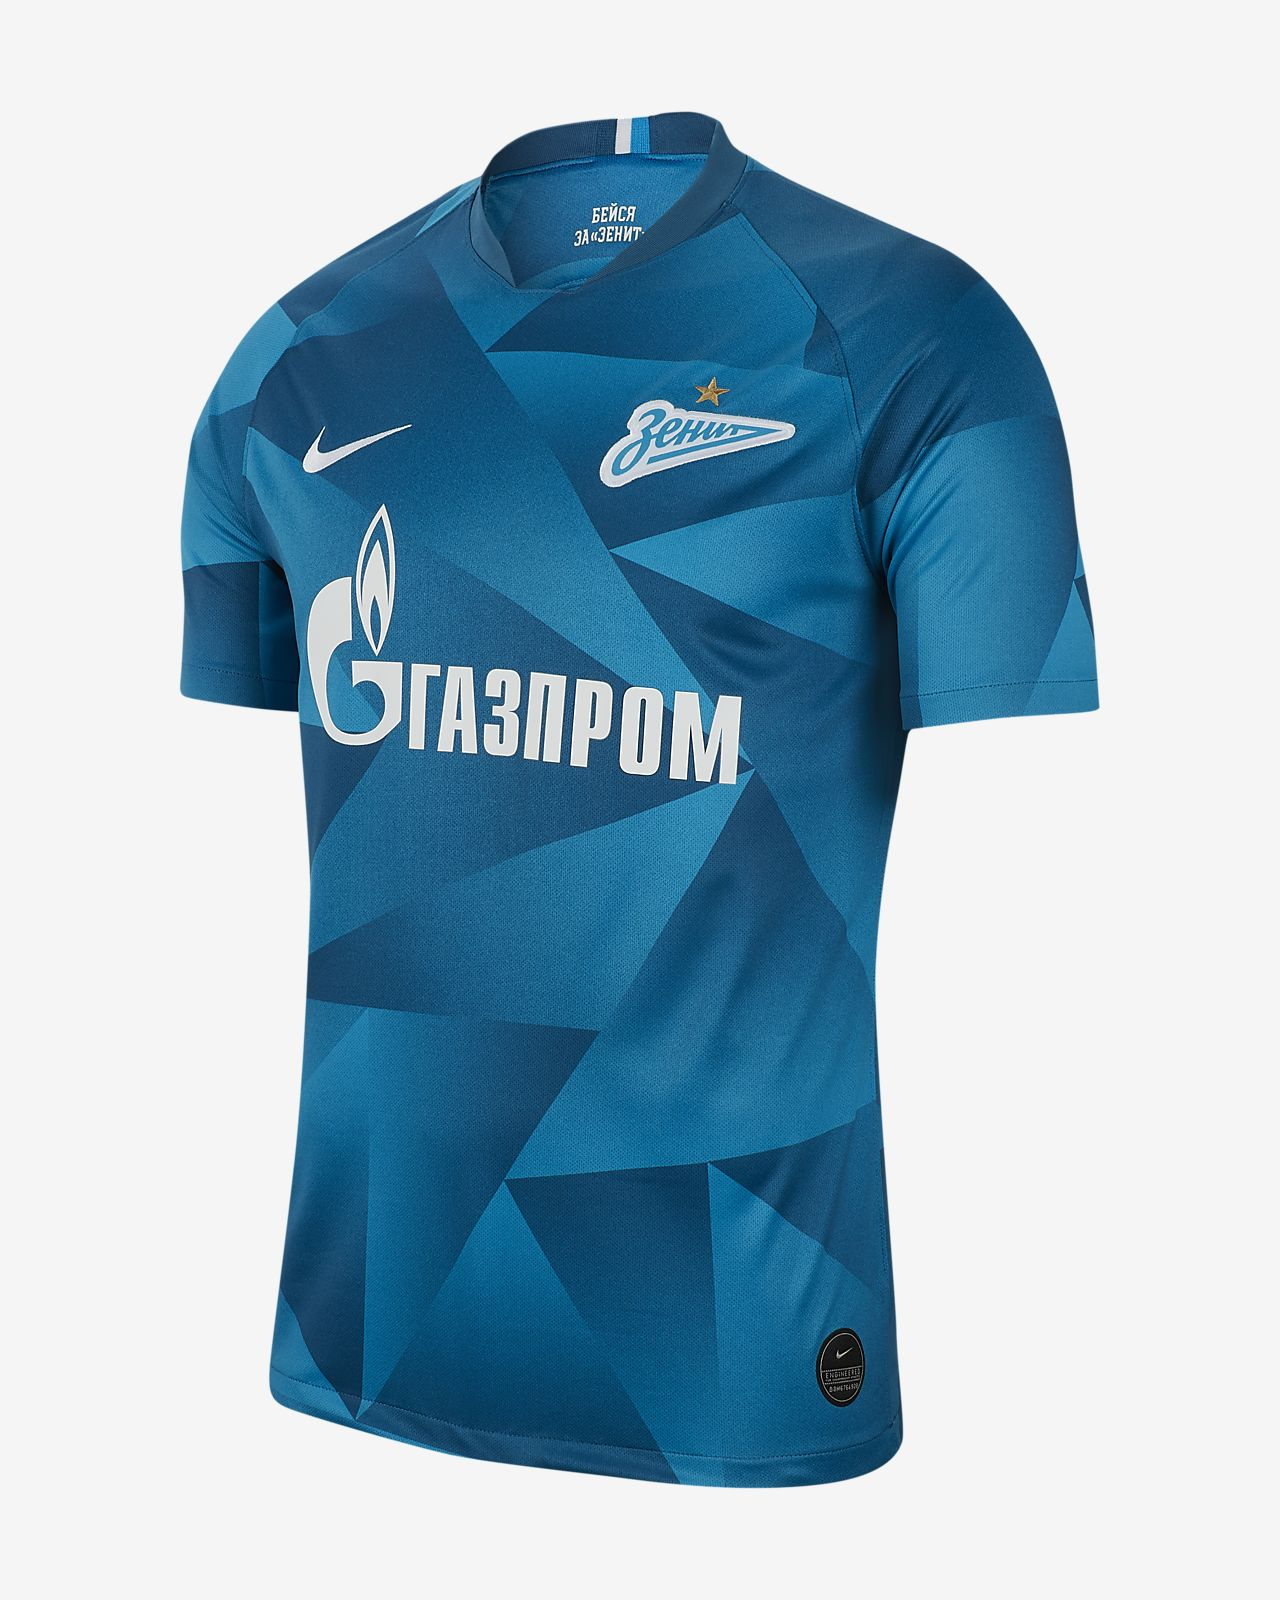 Zenit Saint Petersburg 2019/20 Stadium Home Men's Football Shirt